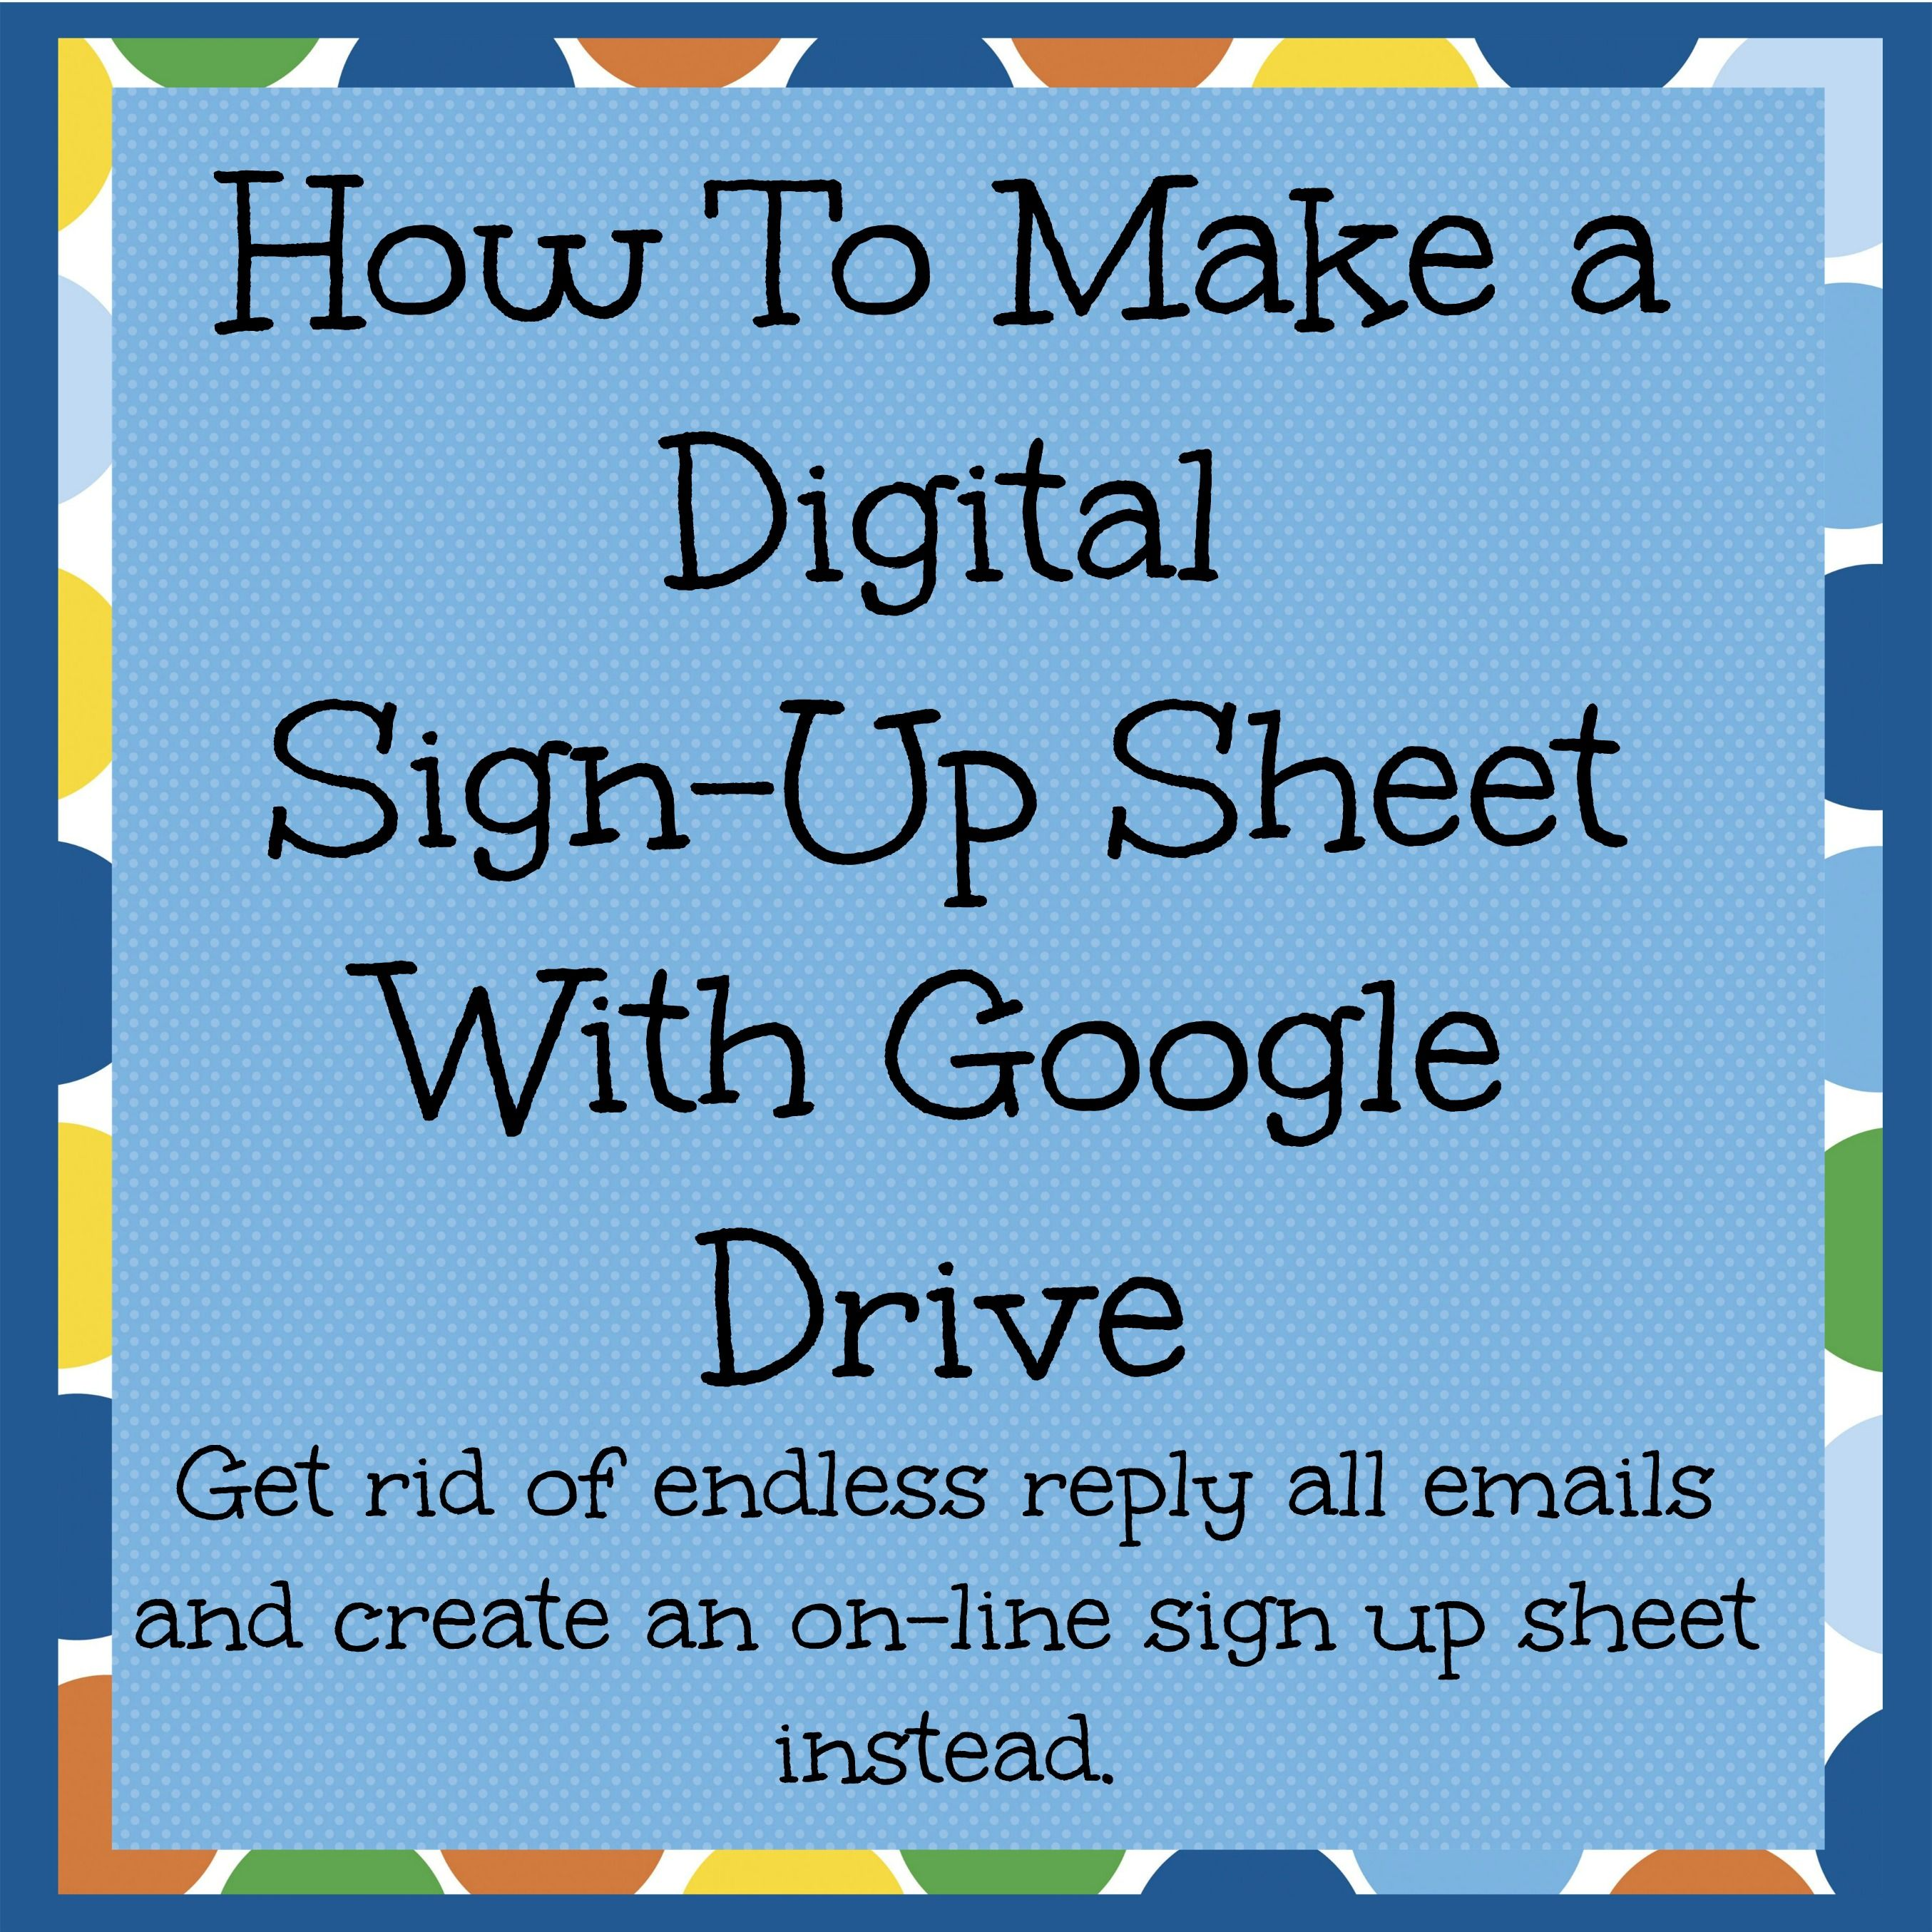 How To Create A Digital Sign Up Sheet With Google Drive Online Sign Up Sheet Sign Up Sheets Digital Signs